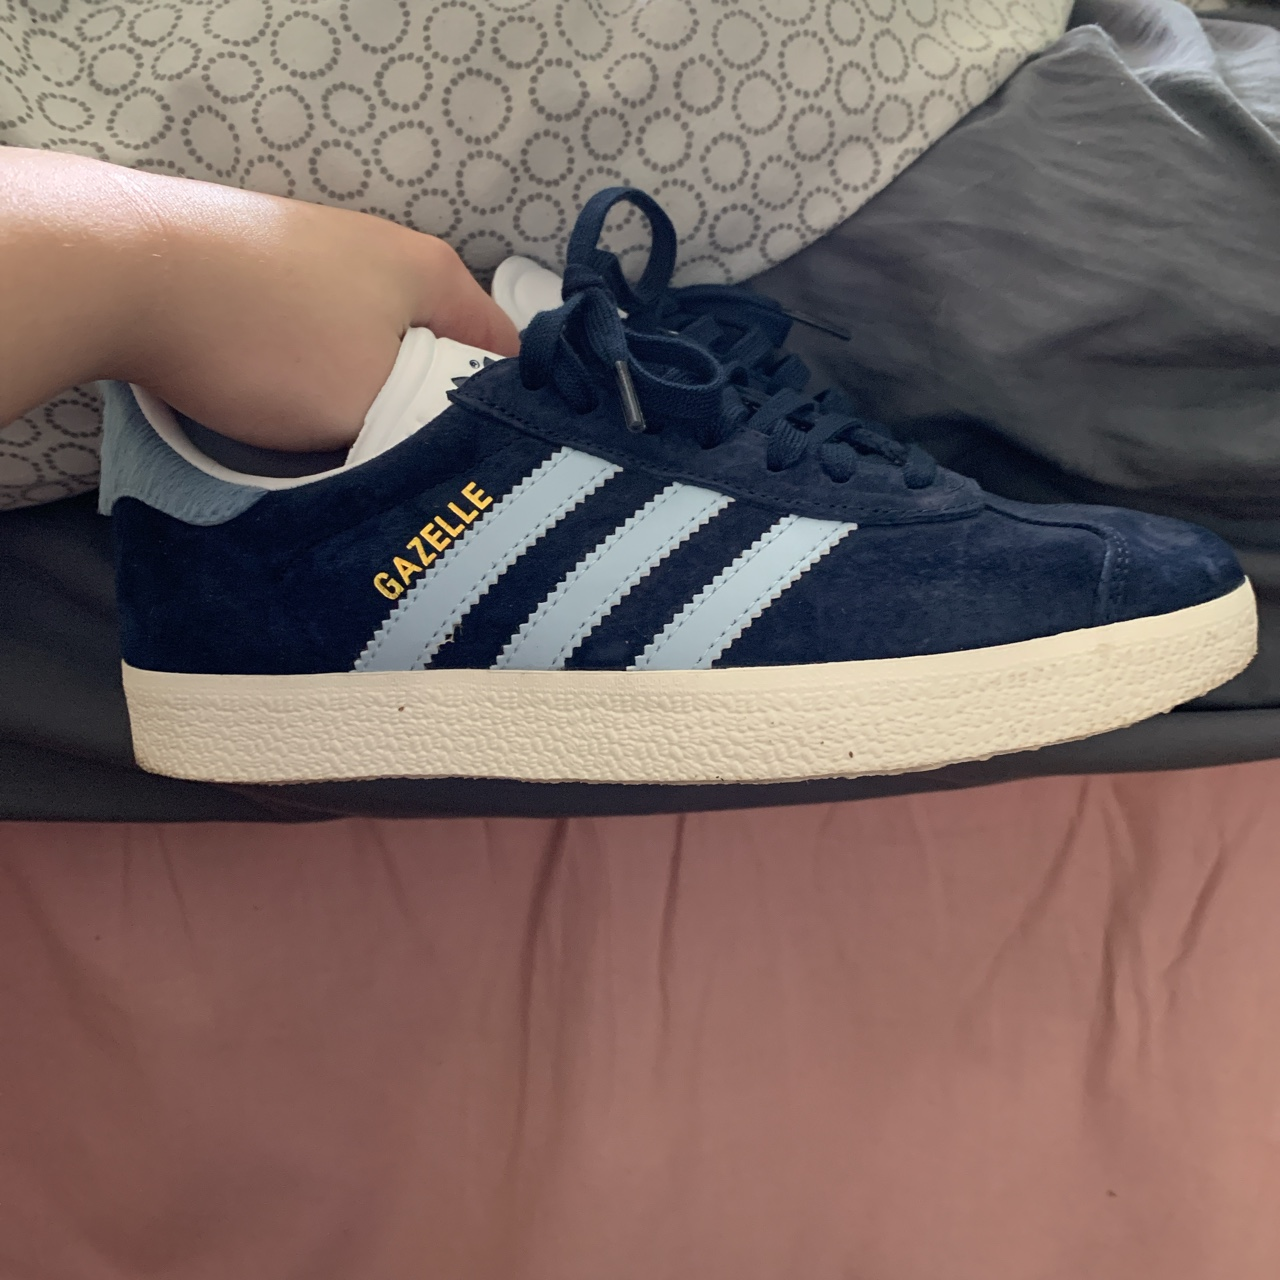 Adidas gazelle size 4 navy and light blue with a...